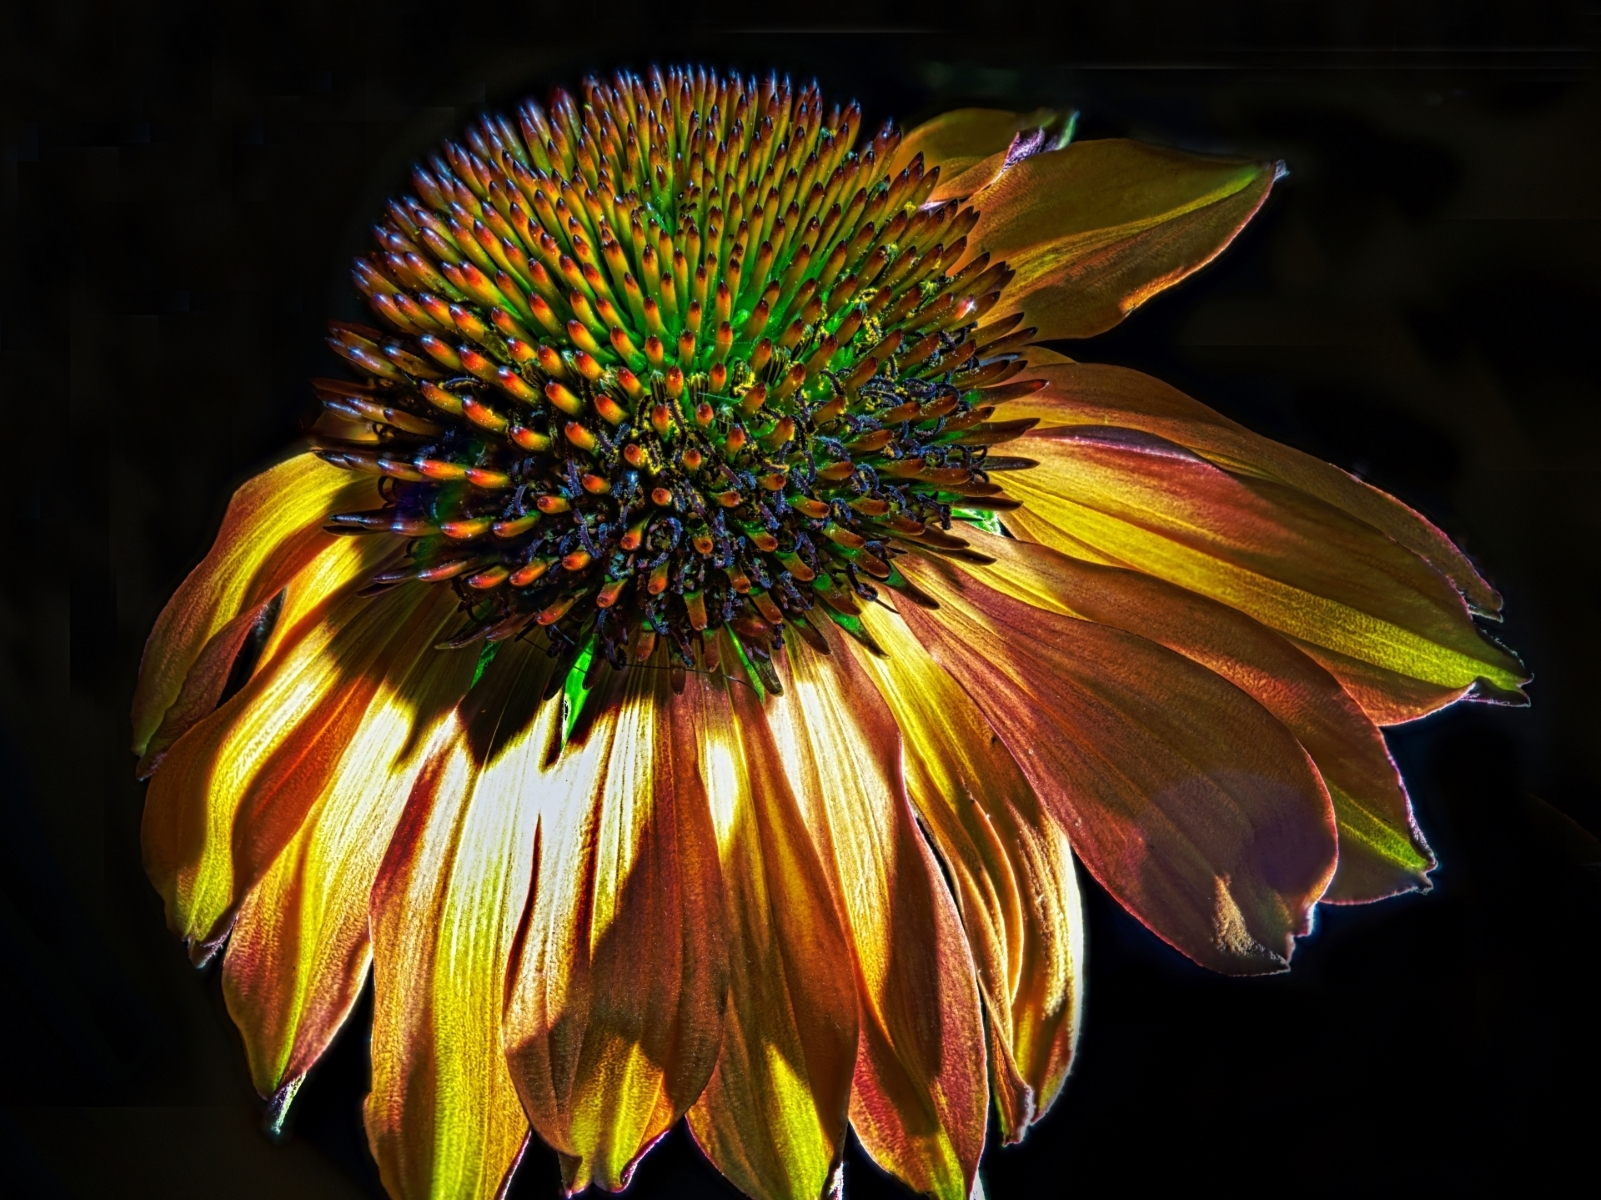 Echinacea-Unleashed-PA-1-Place-by-Richard-James-VC